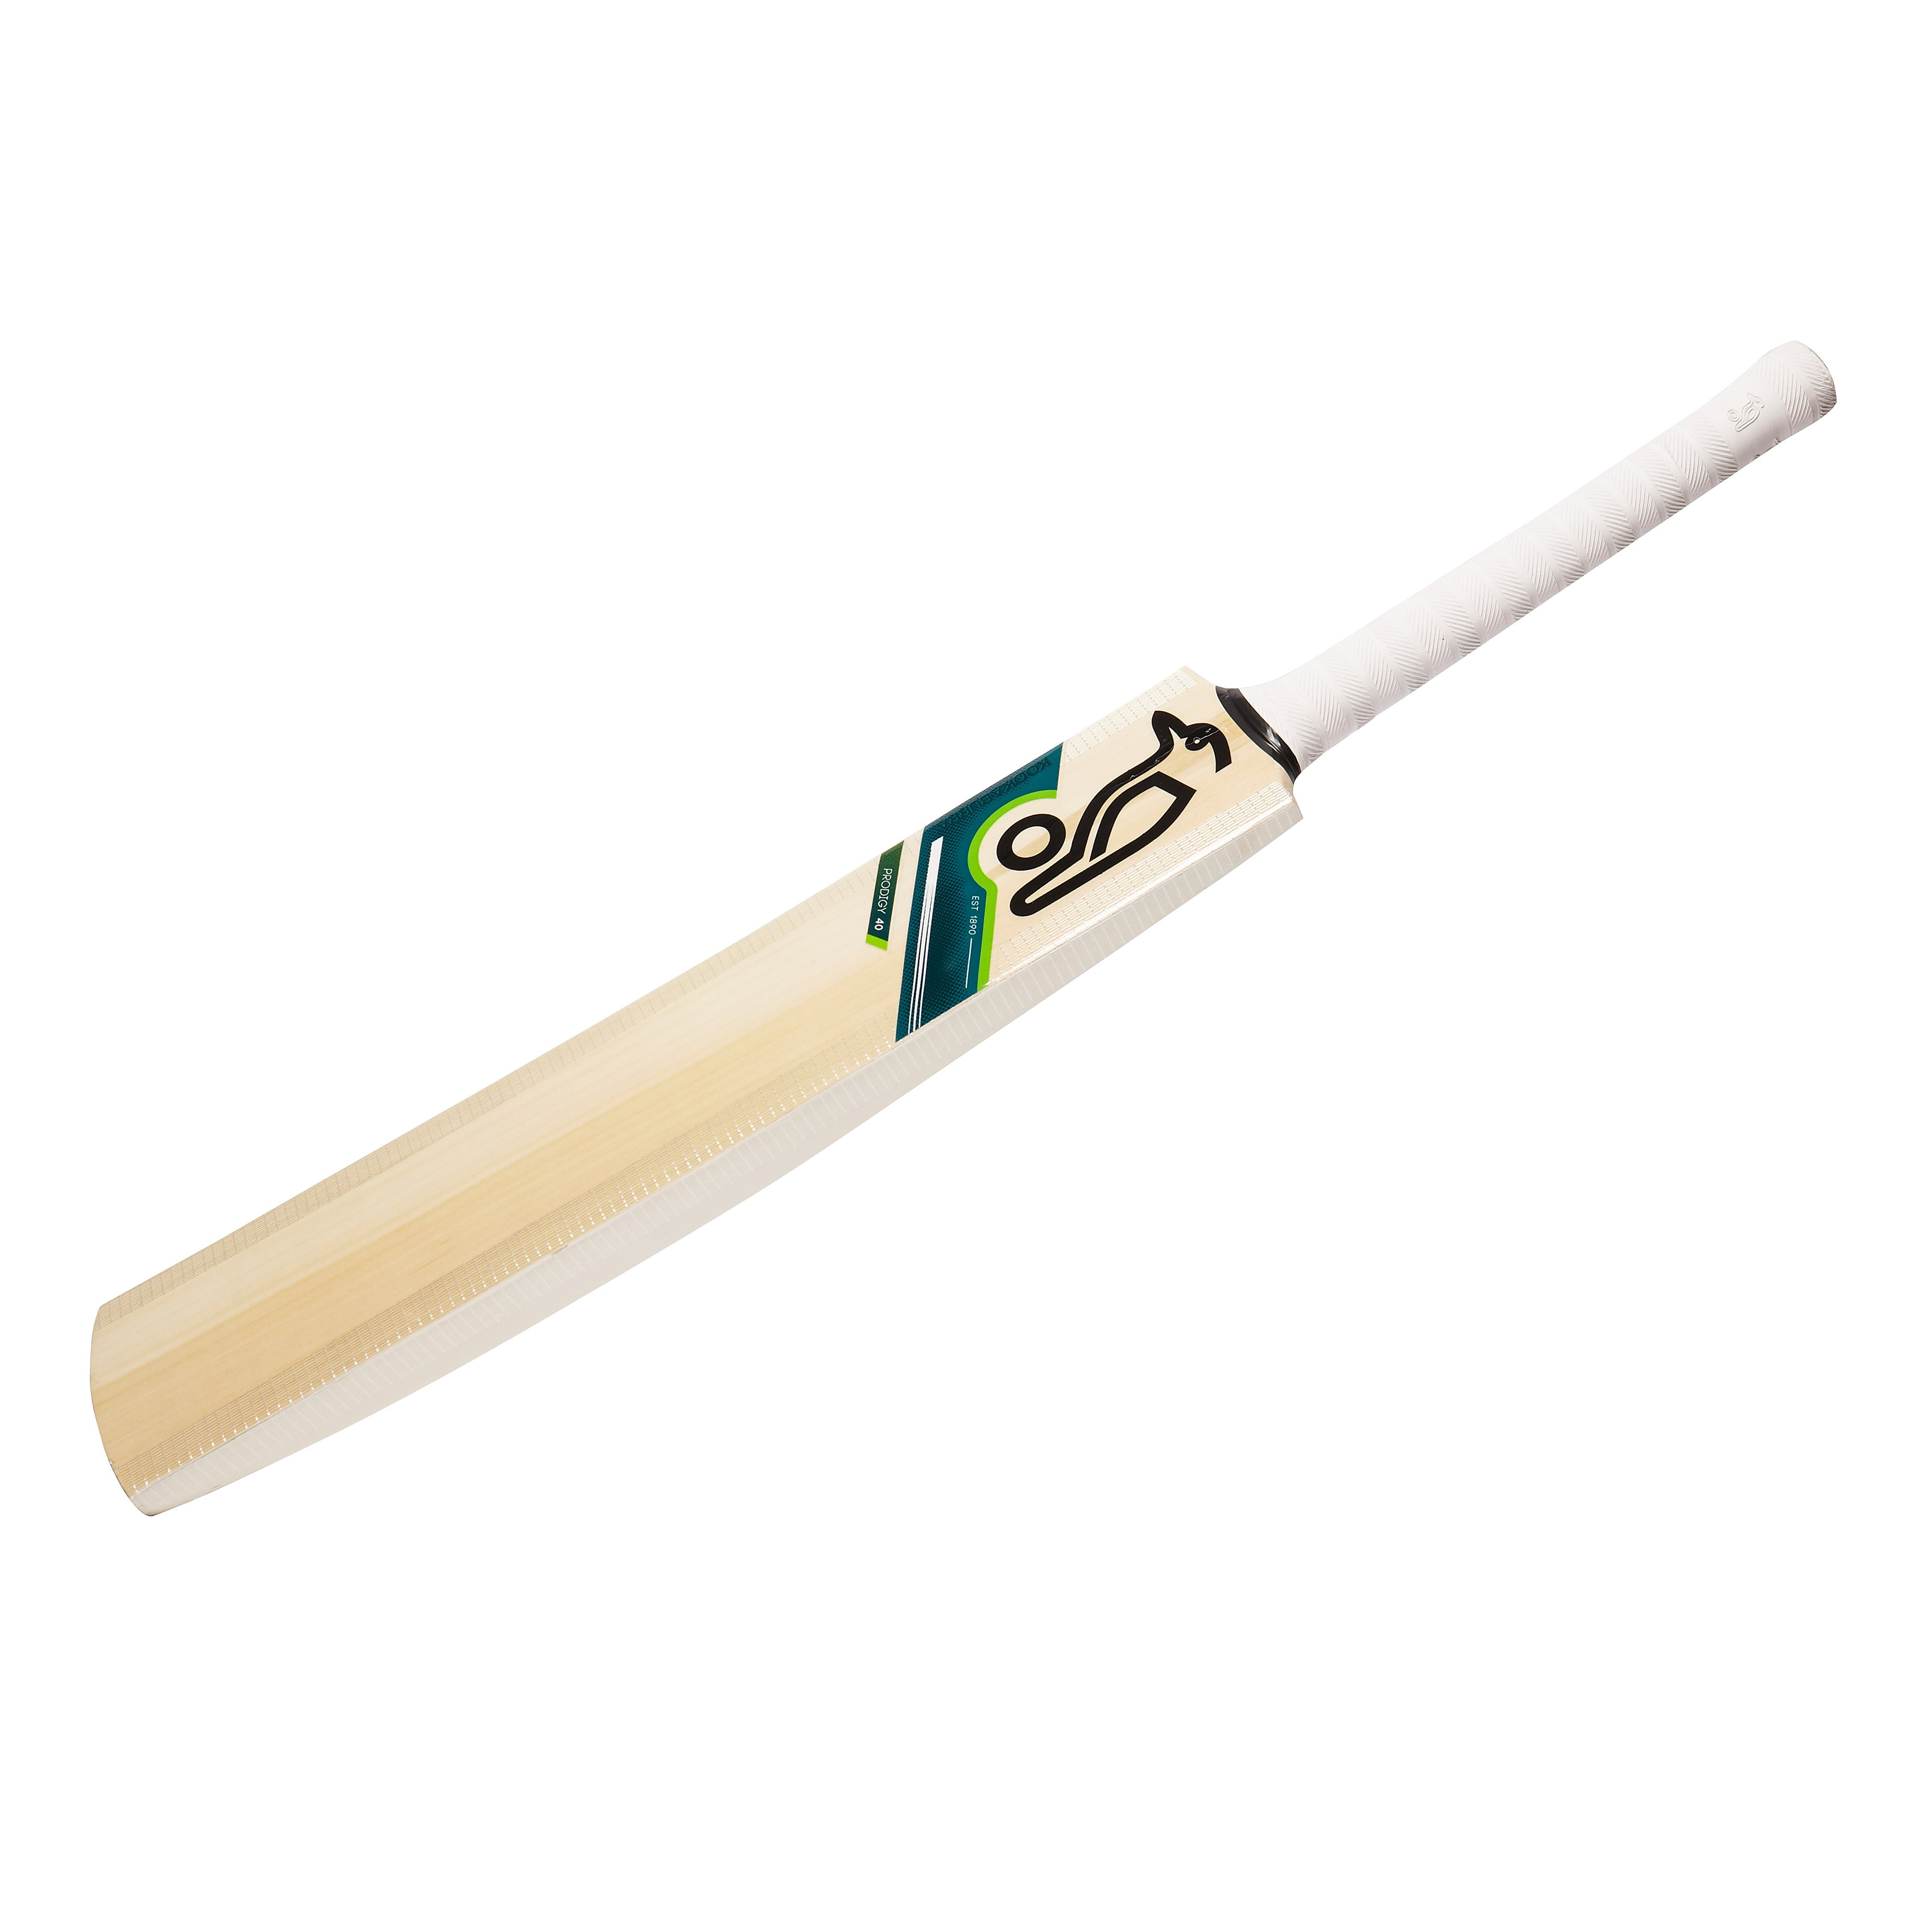 Kookaburra Kahuna Prodigy 40 Junior Cricket Bat